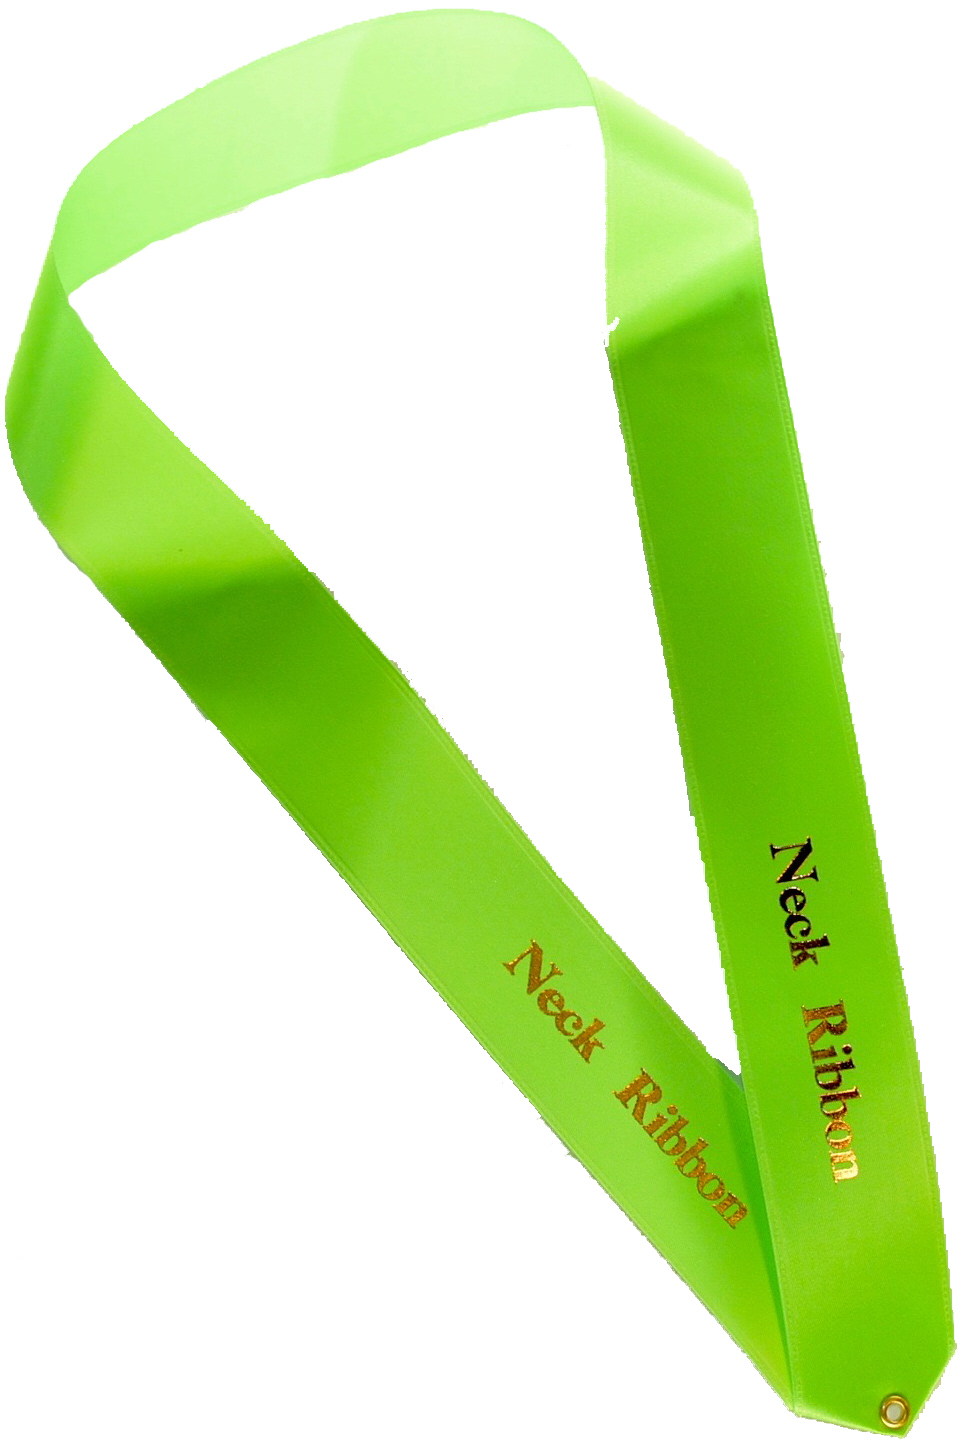 Neck Ribbon - Printed 1 Side or 2 Sides Same